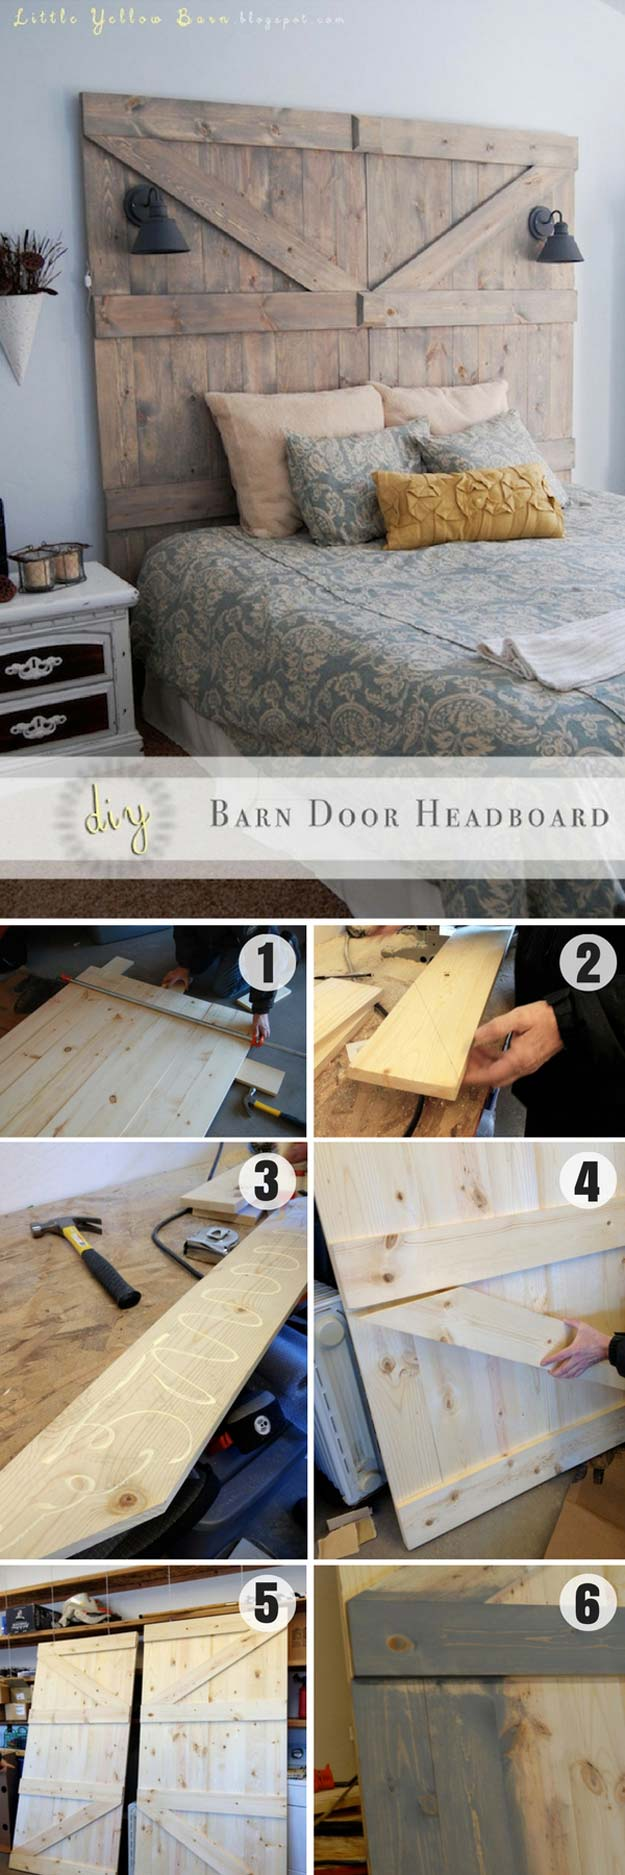 15 Epic DIY Projects To Spruce Up Your Bed - Craftsonfire